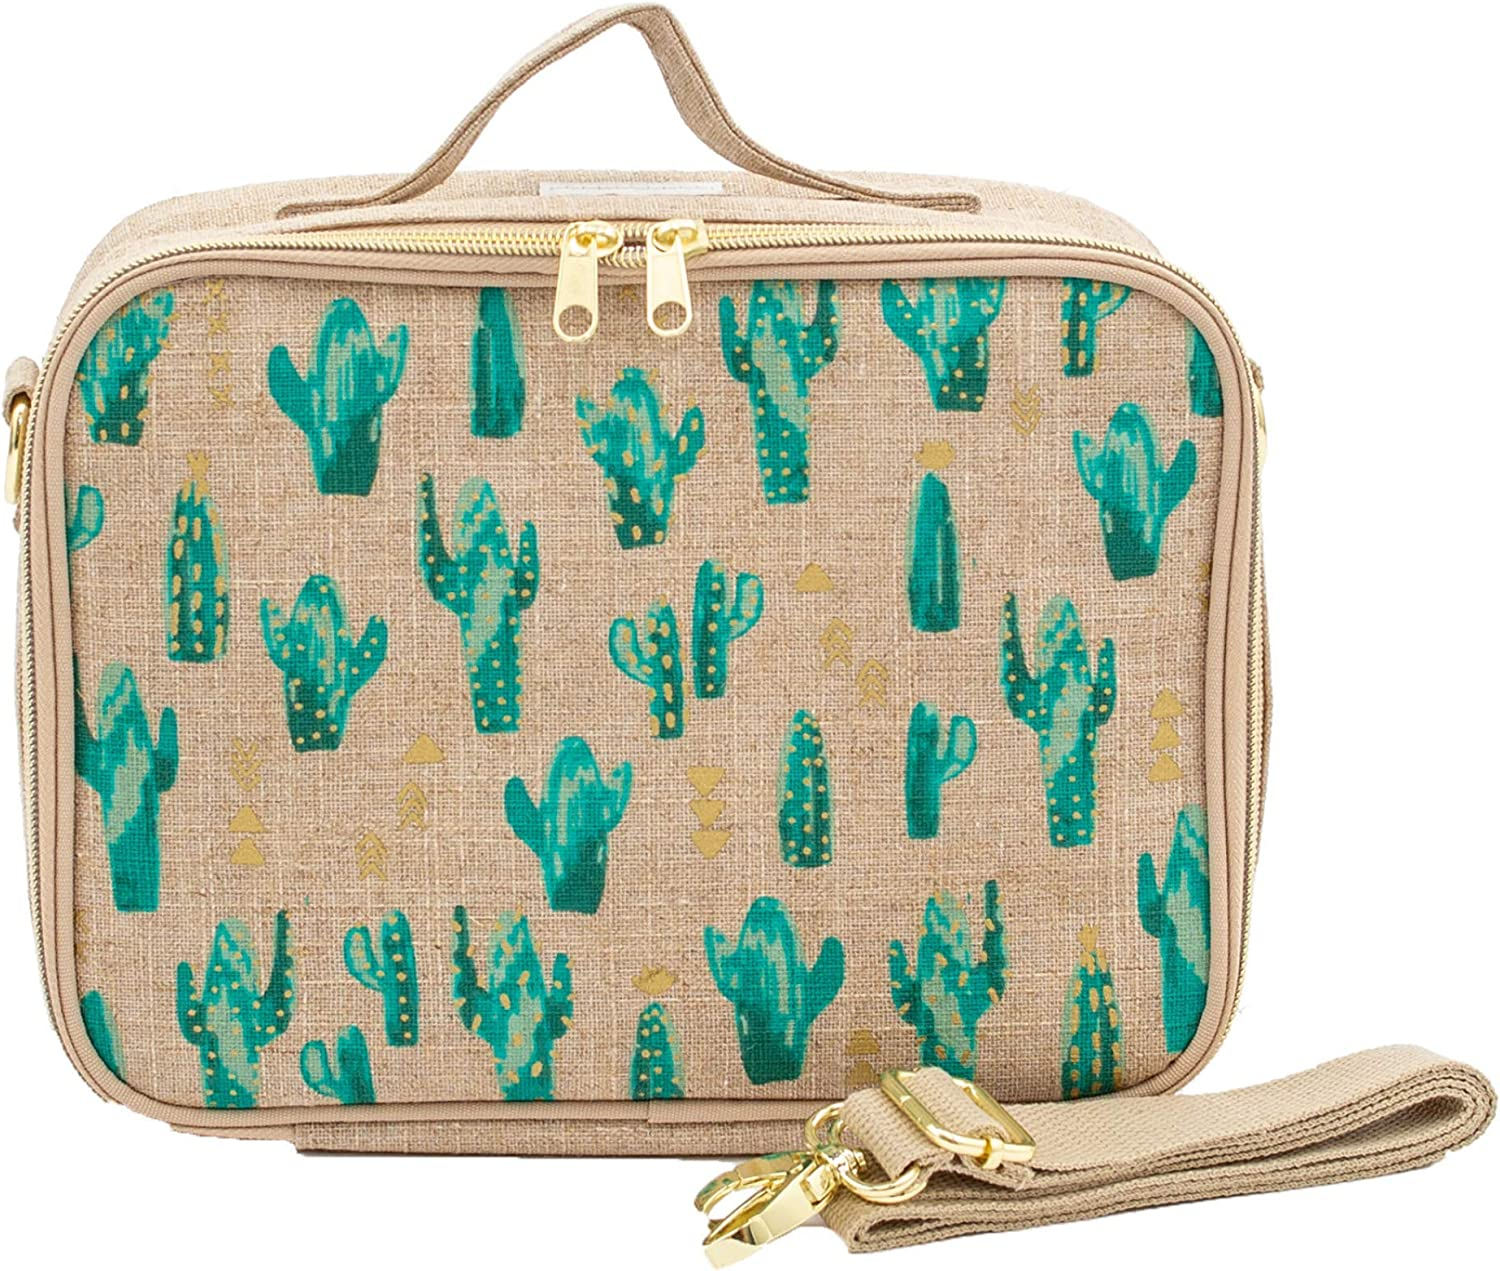 SoYoung Lunch Bag trend Super Special SALE held rank - Raw Linen and Eco-Friendly Retro-Inspired